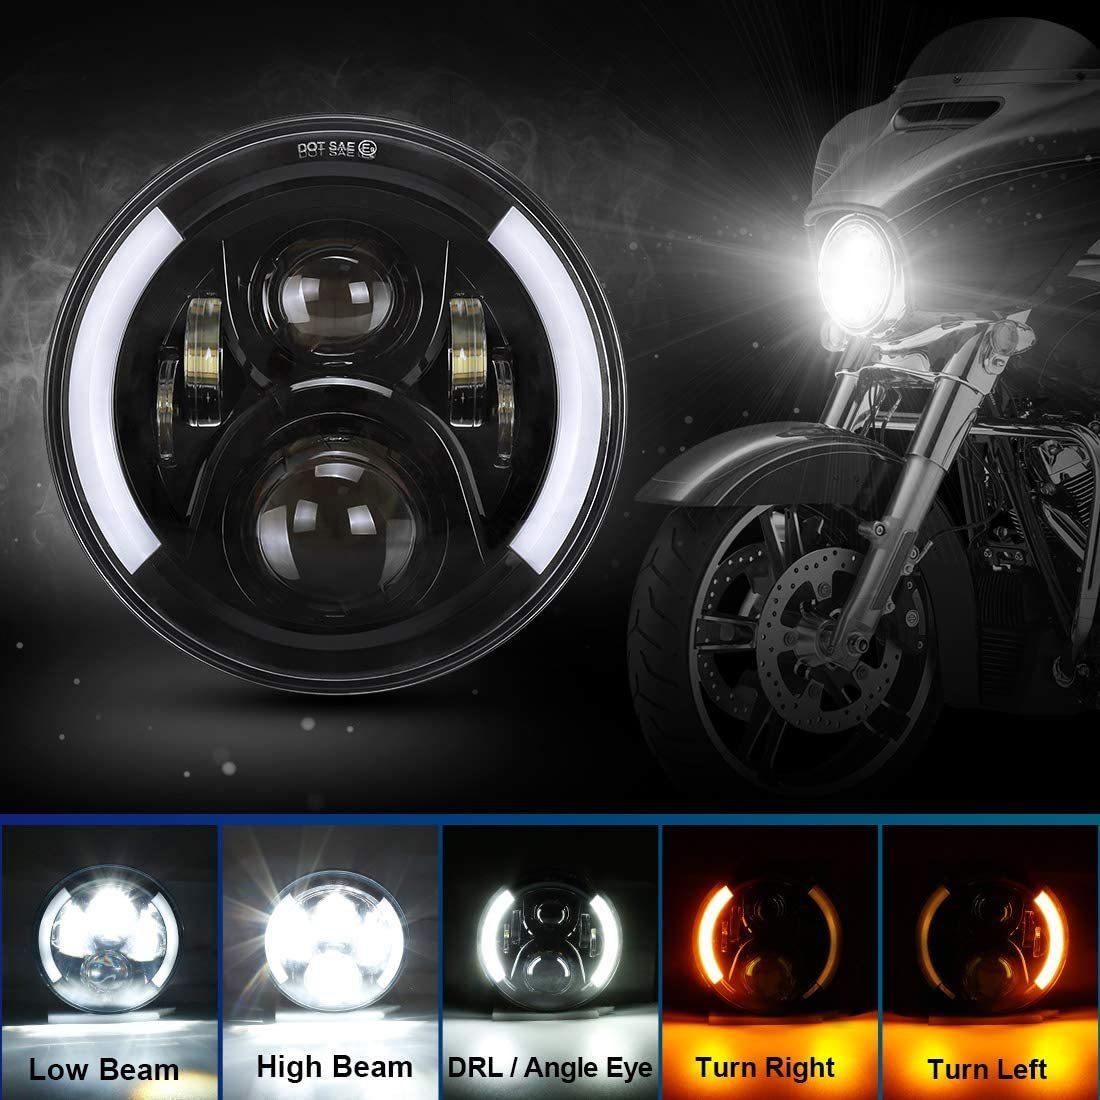 SUPAREE 7 inches LED Motorcycle Headlight